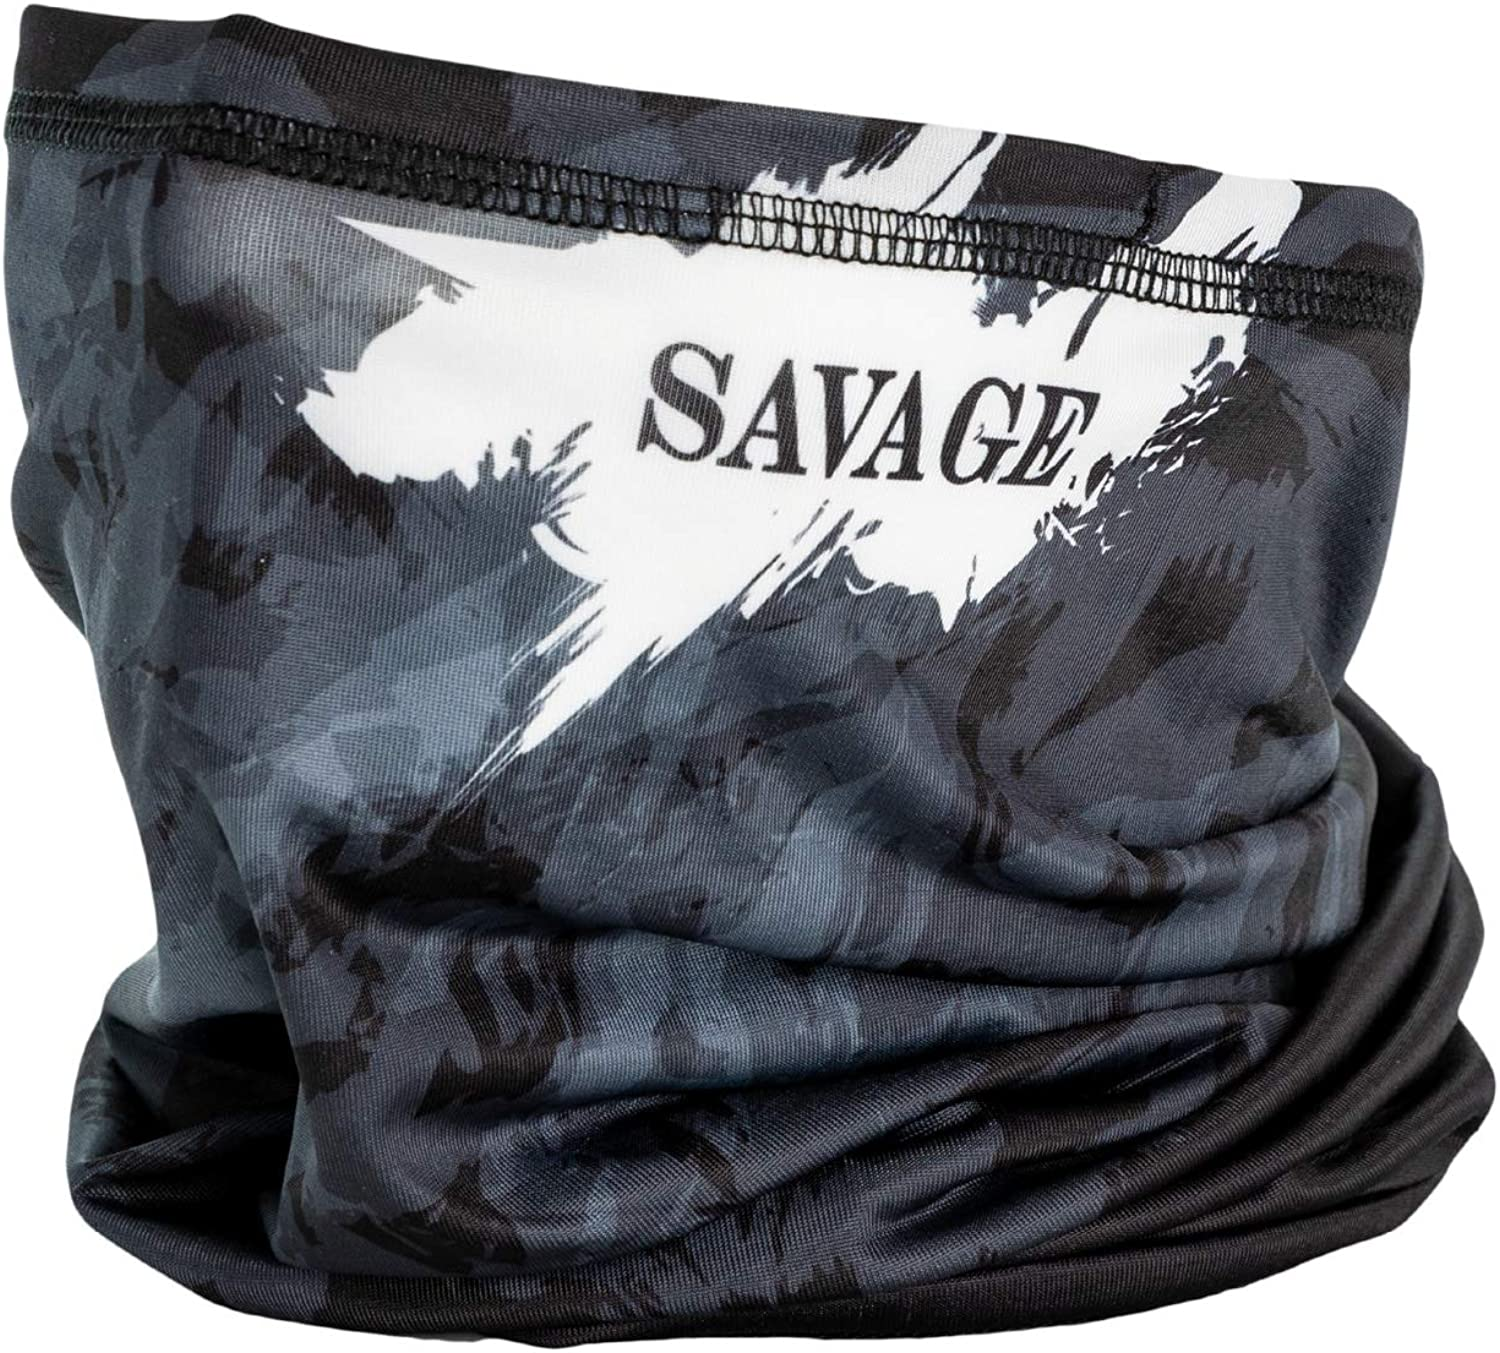 Squirrel Products RESPI-GAITER, Savage Neck and Face Cover